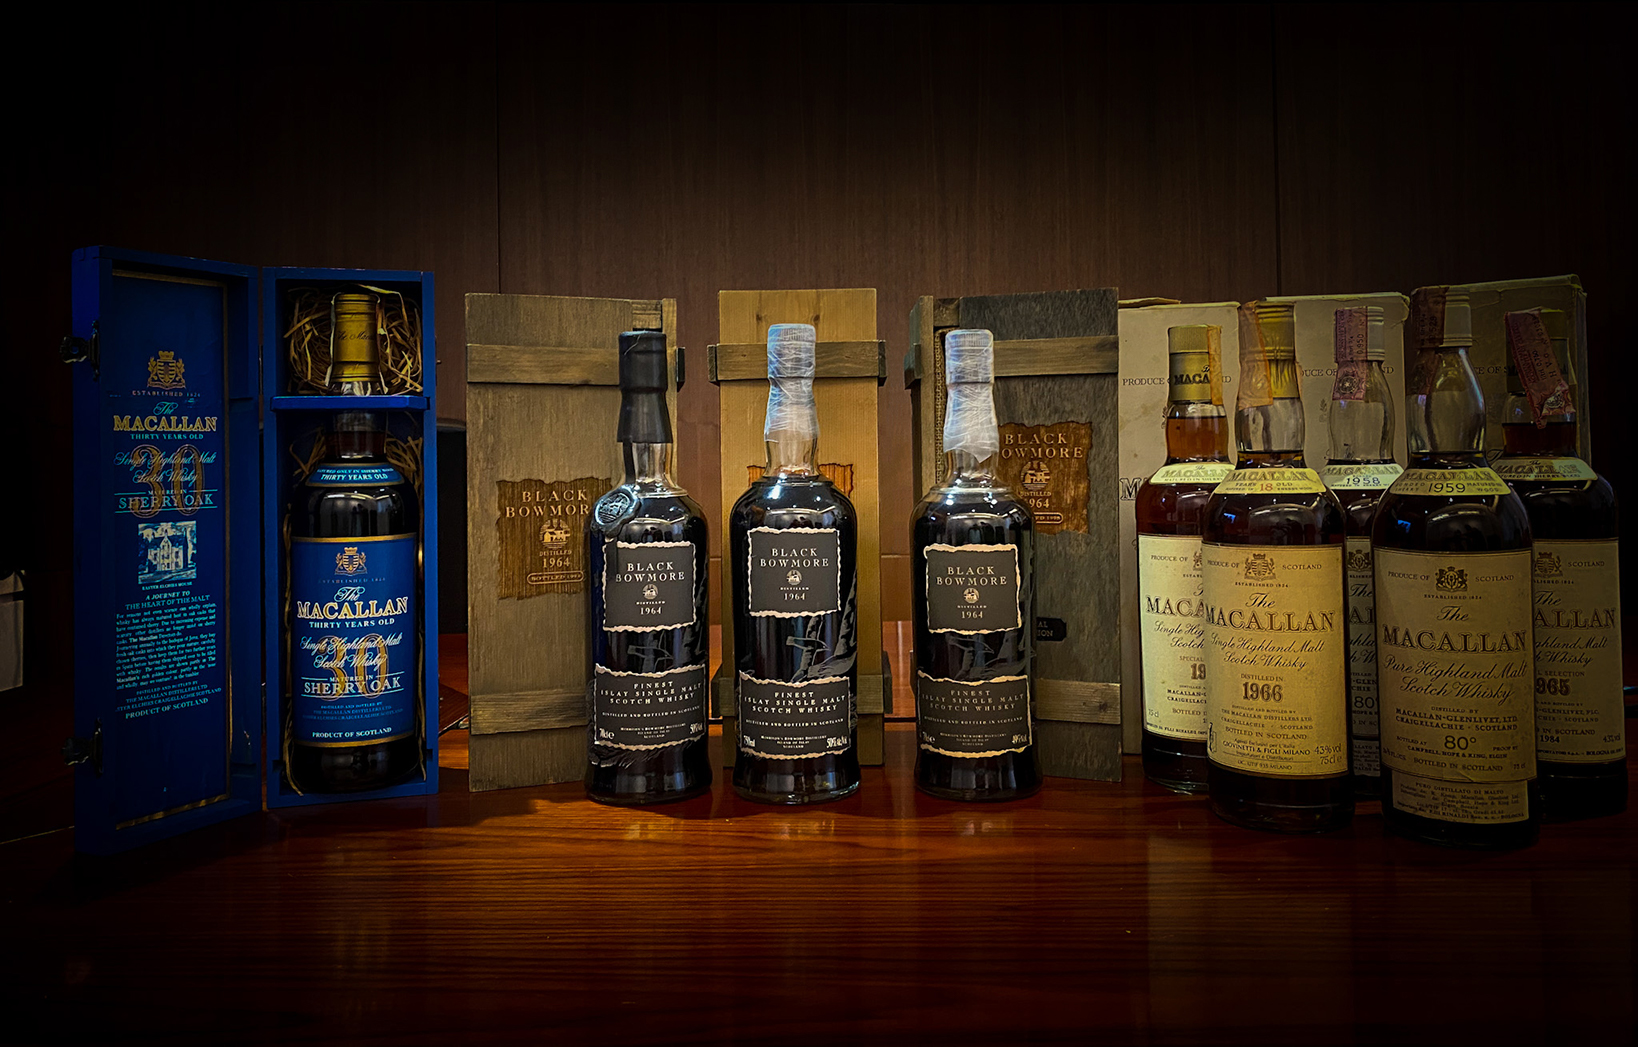 A collection of ultra-aged single malt scotch whiskies